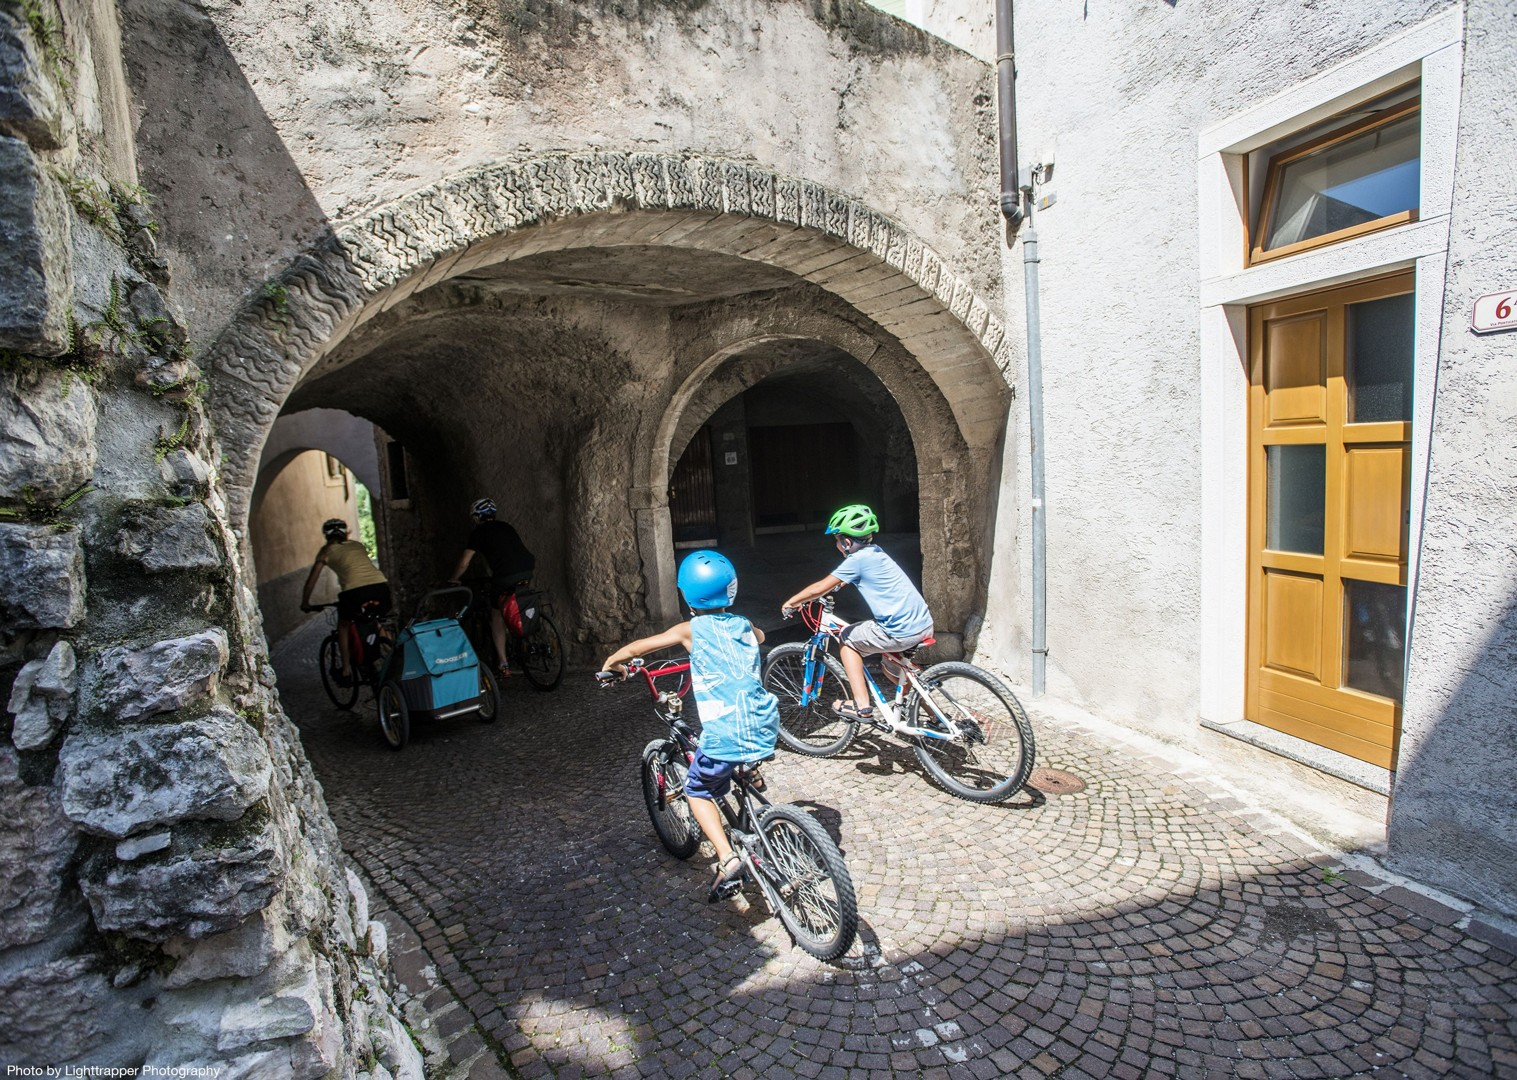 self-guided-leisure-cycling-holiday-italy-green-heart-of-umbria.jpg - Italy - Spirit of Umbria - Family Cycling